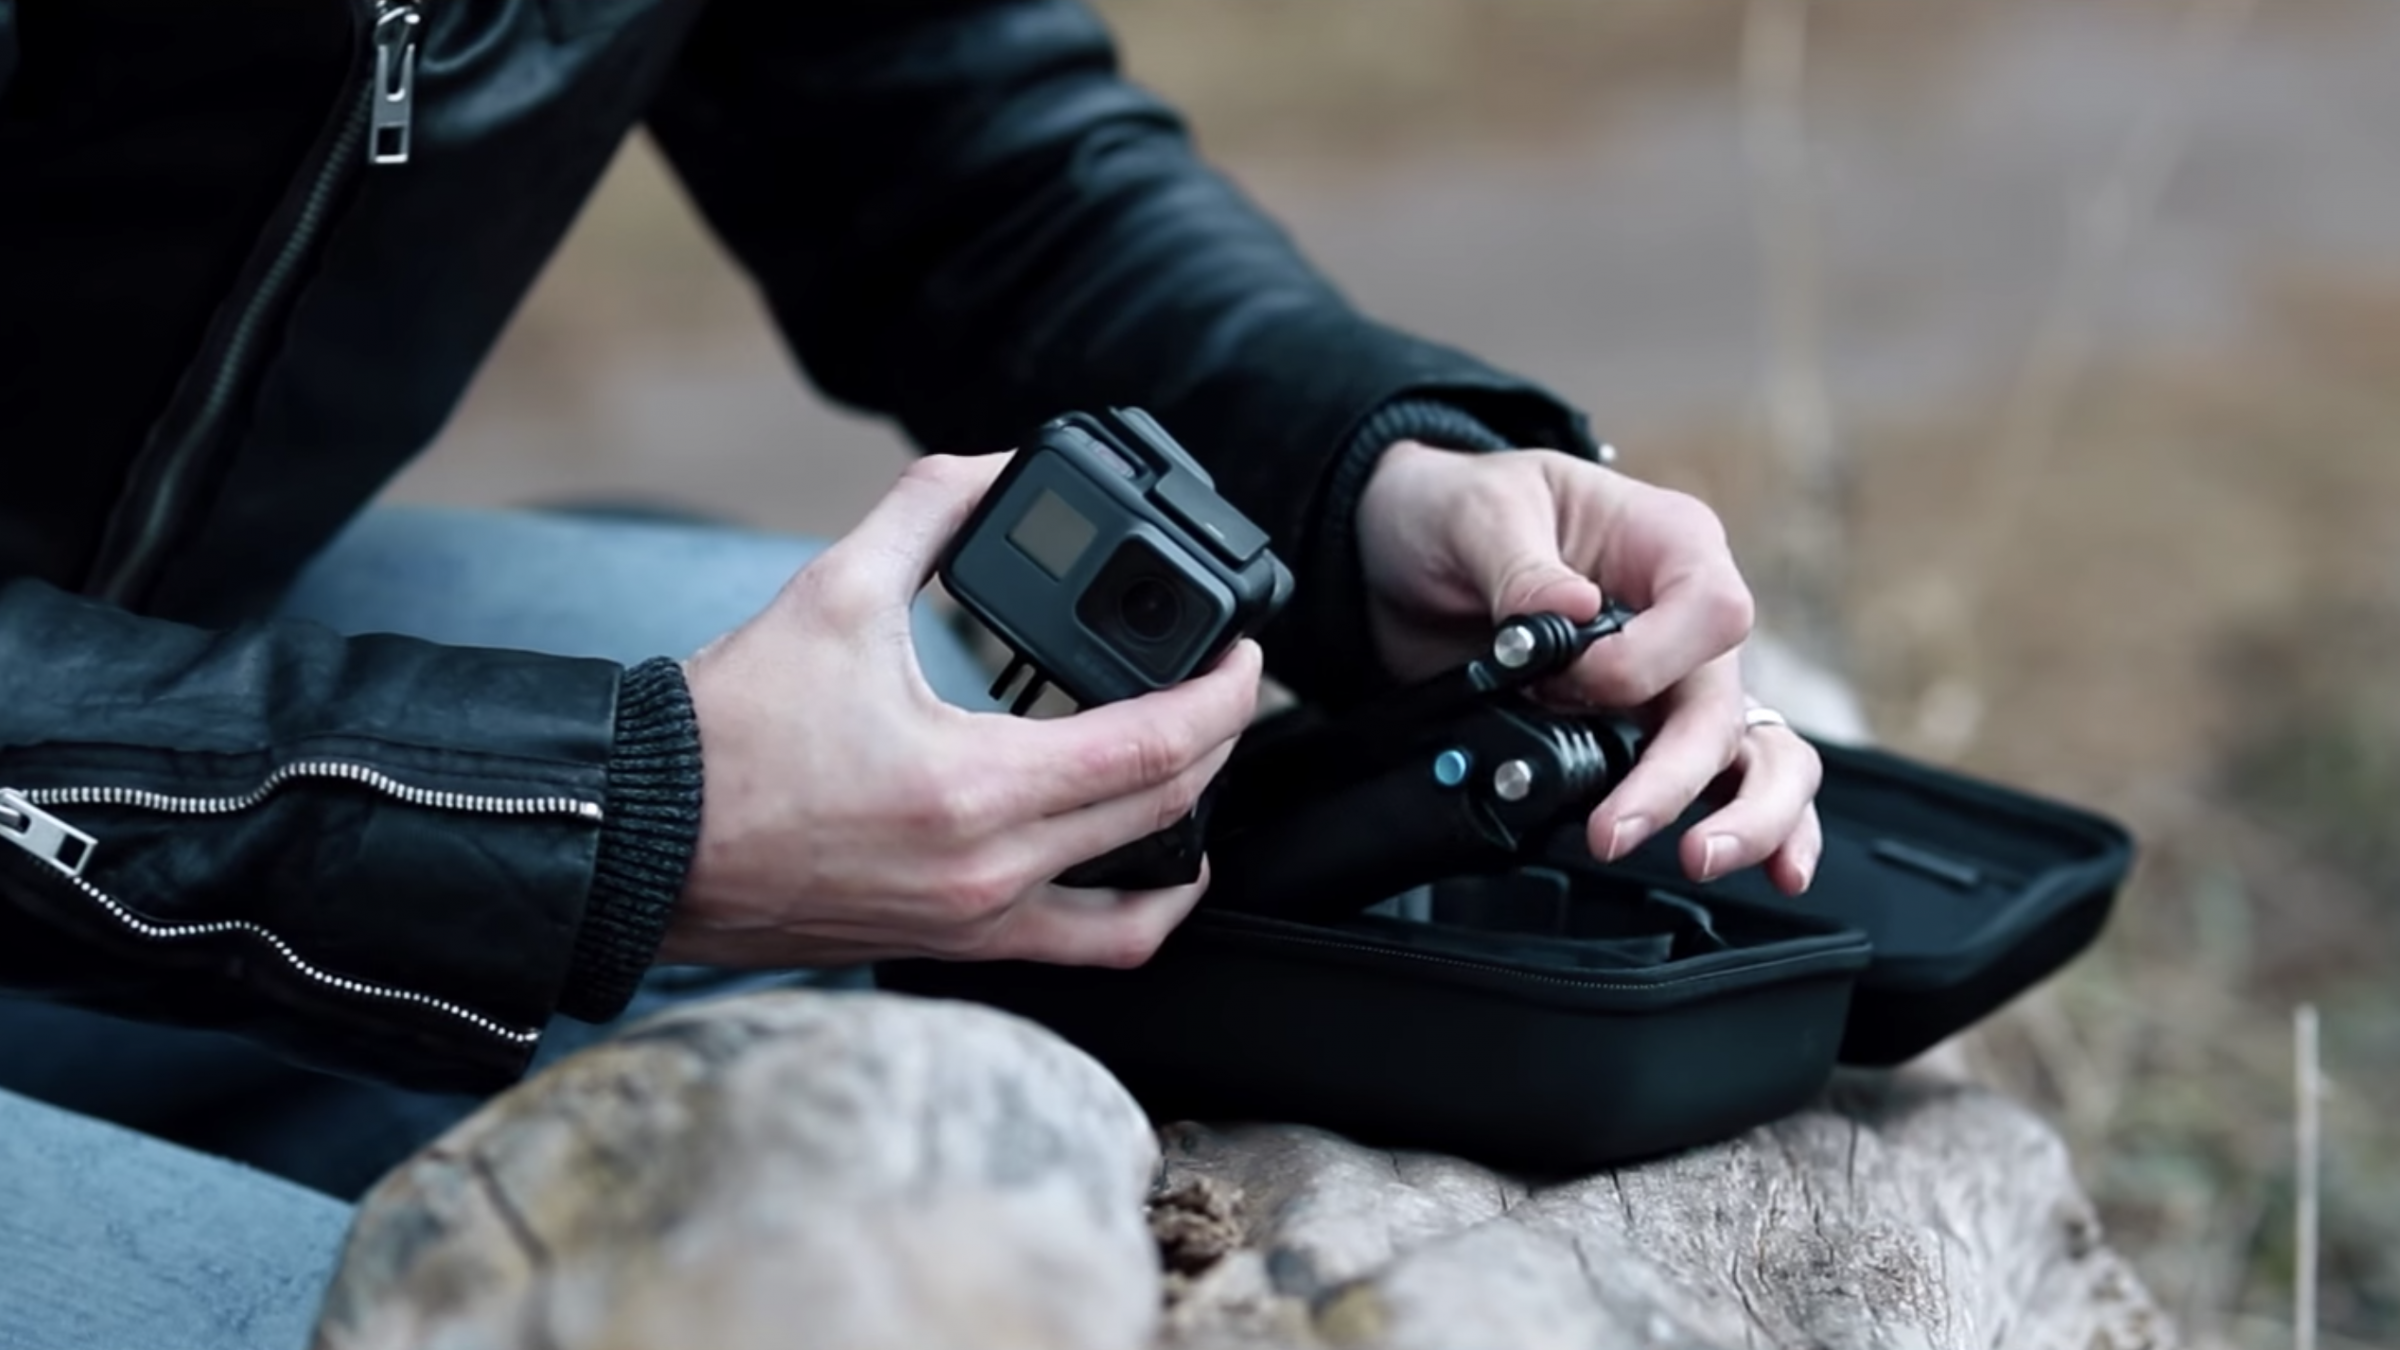 Watch: How to Make Your GoPro Footage More Cinematic